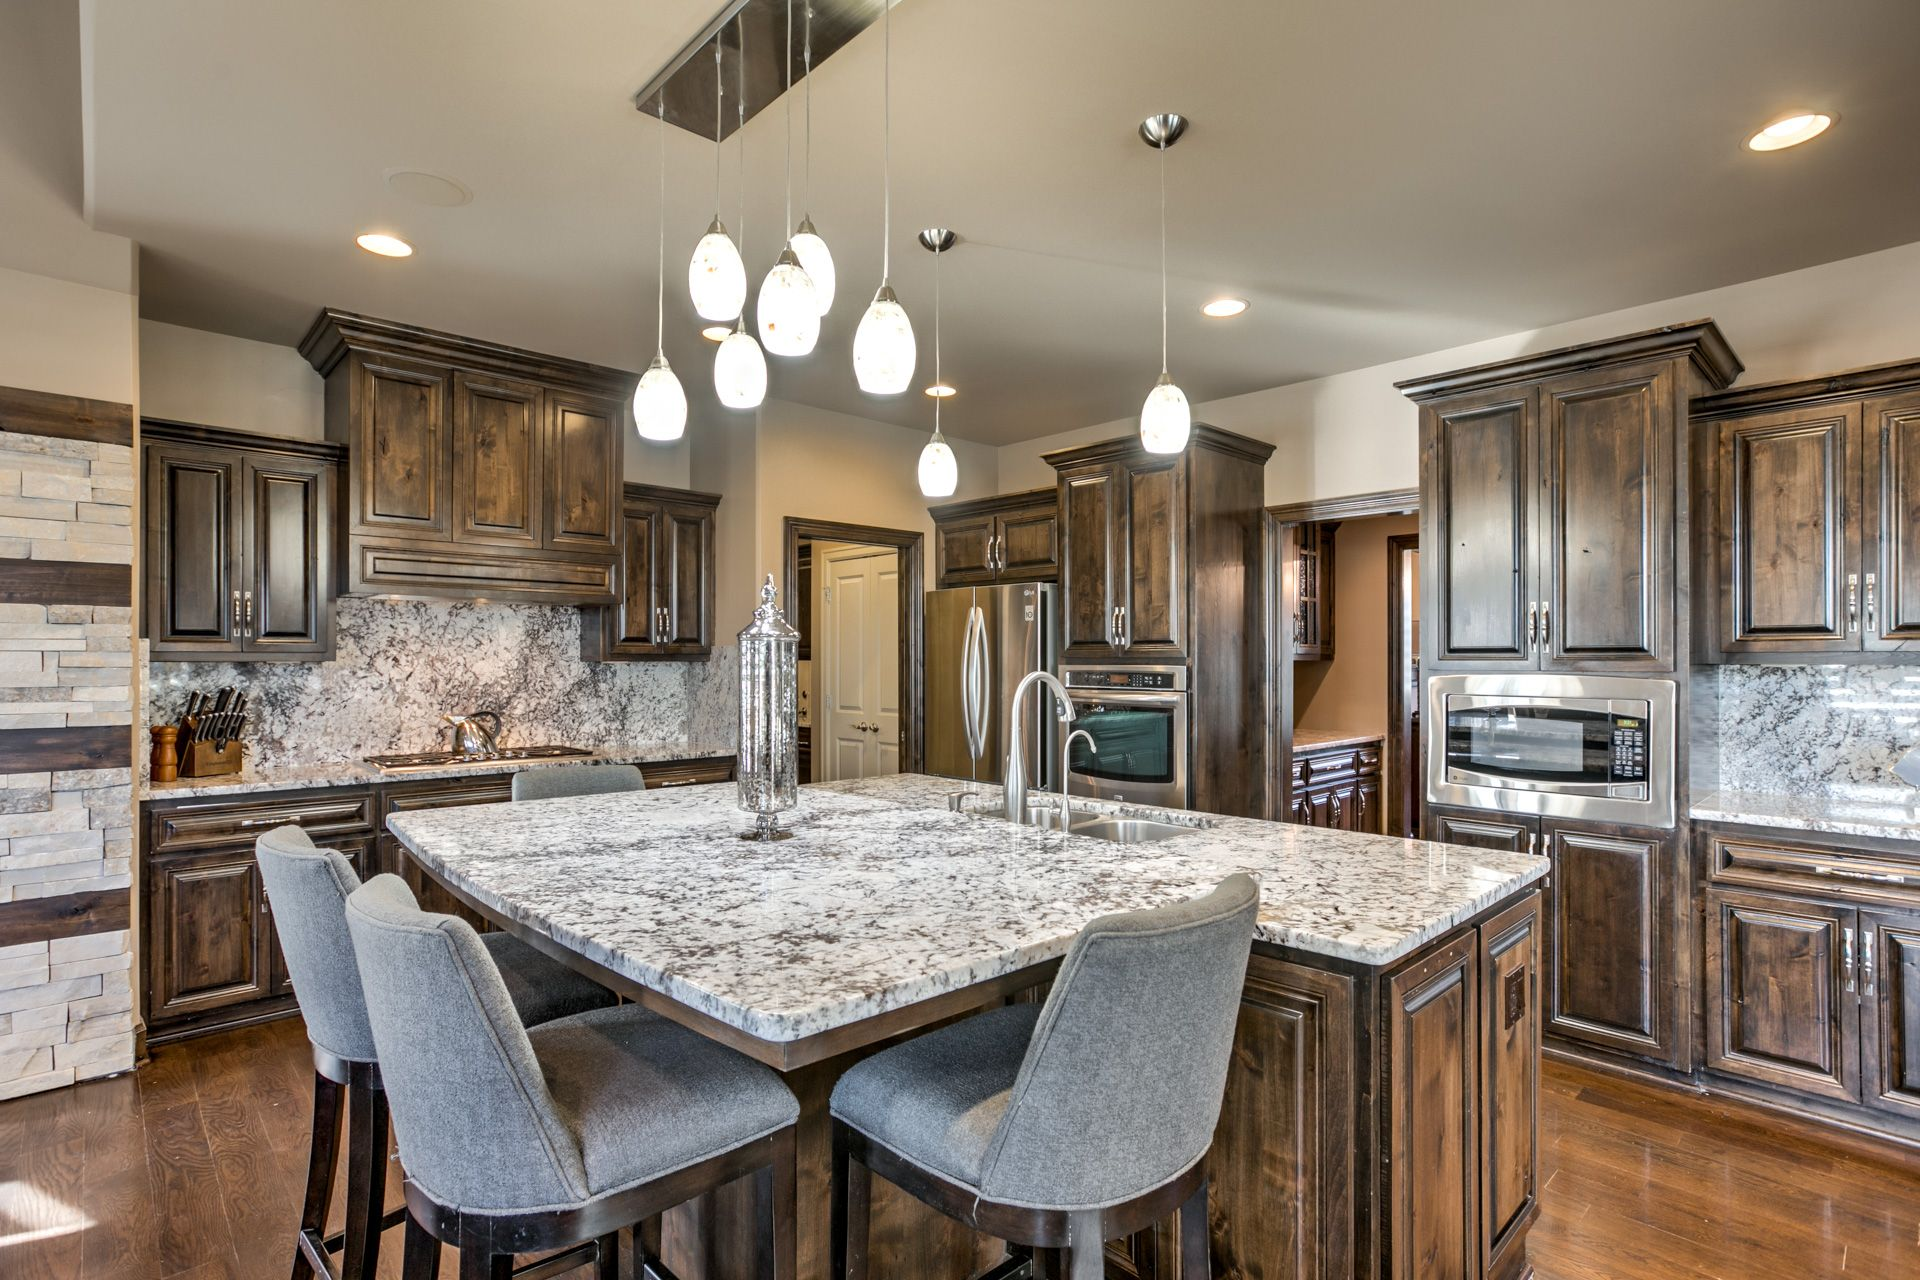 This kitchen is AMAZING!!  #homesforsale #Omaha #dreamhome #homedecor #lakehome #luxuryrealestate #dreamhome #luxury #home #gorgeoushomes #windows #largehomes #realestate #beautifulhomes #modernhomes